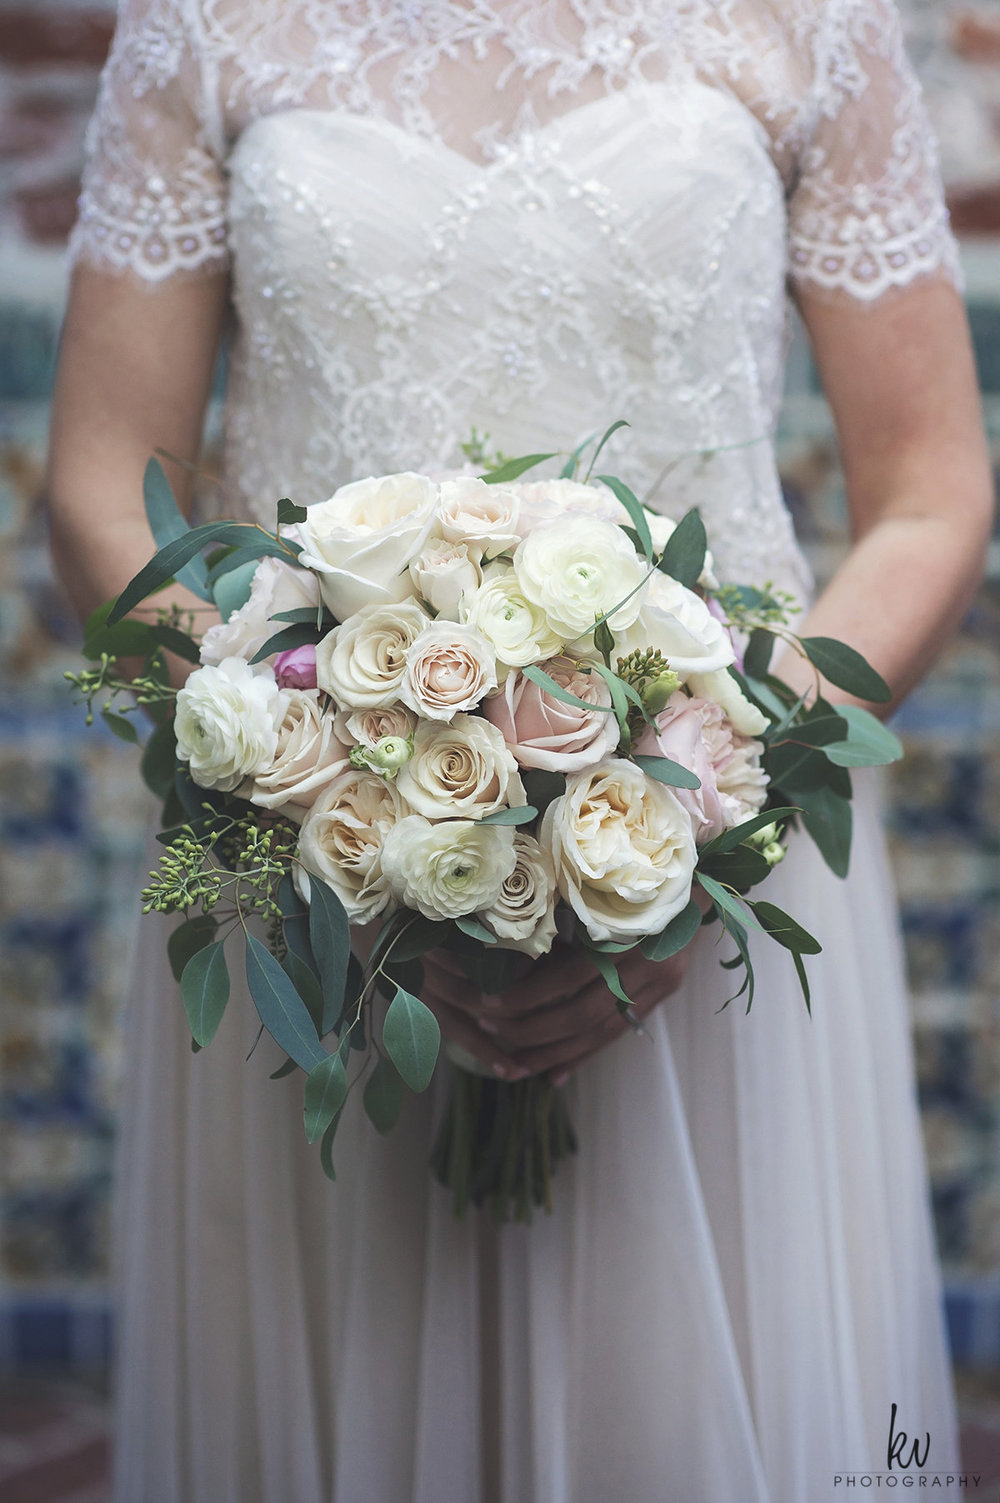 Bridal bouquet of blush and ivory garden roses